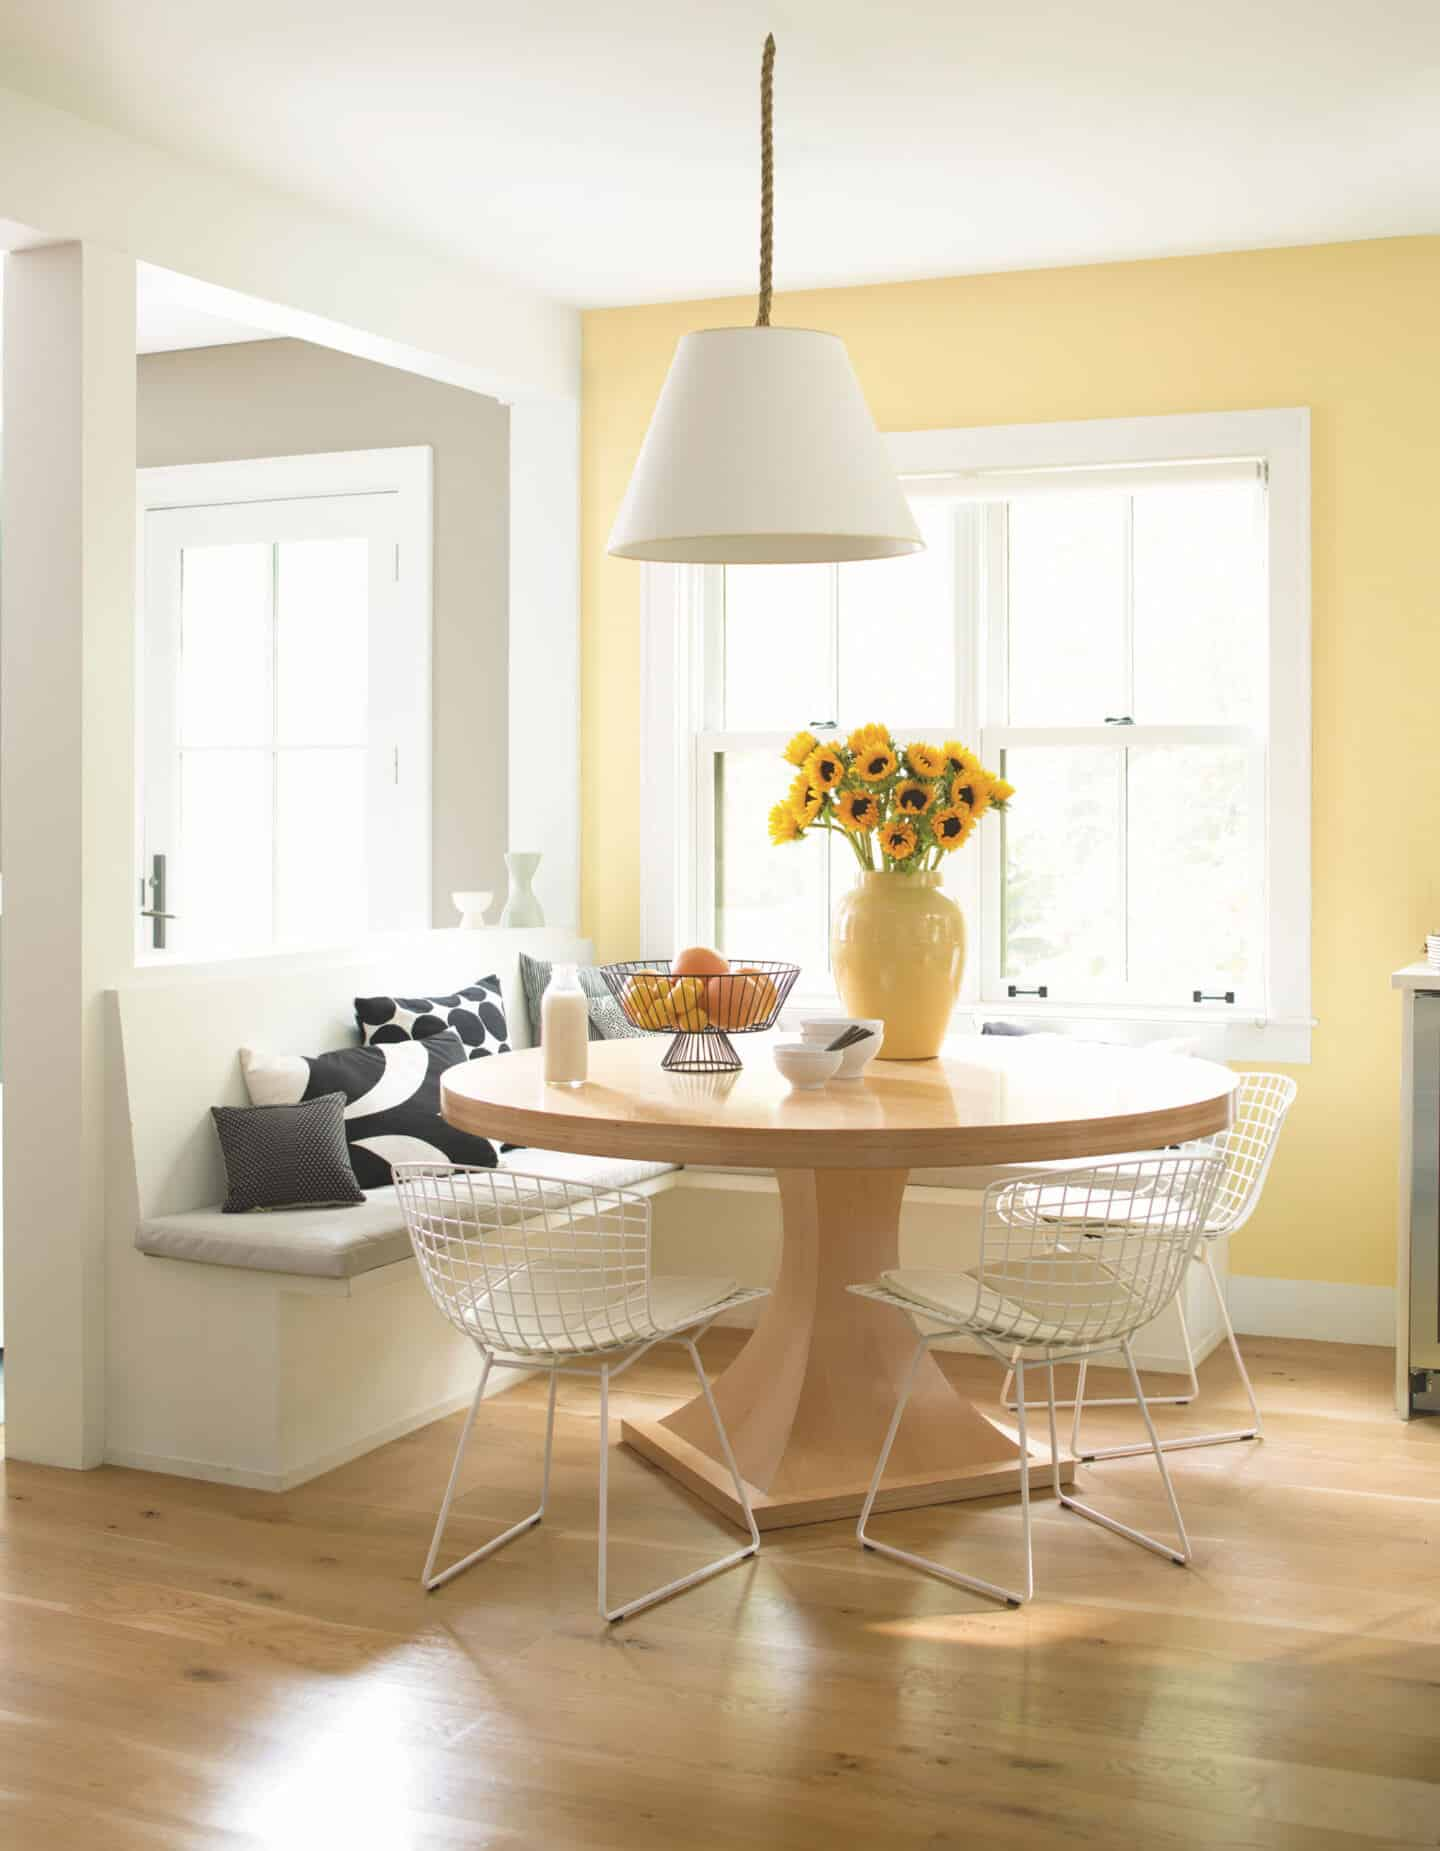 Pantone Colour of the Year 2021 - Illuminating. The colour psychology behind using yellow in interiors. A dining table in front of bench seating with a window behind. Wall painted in yellow paint from Benjamin Moore